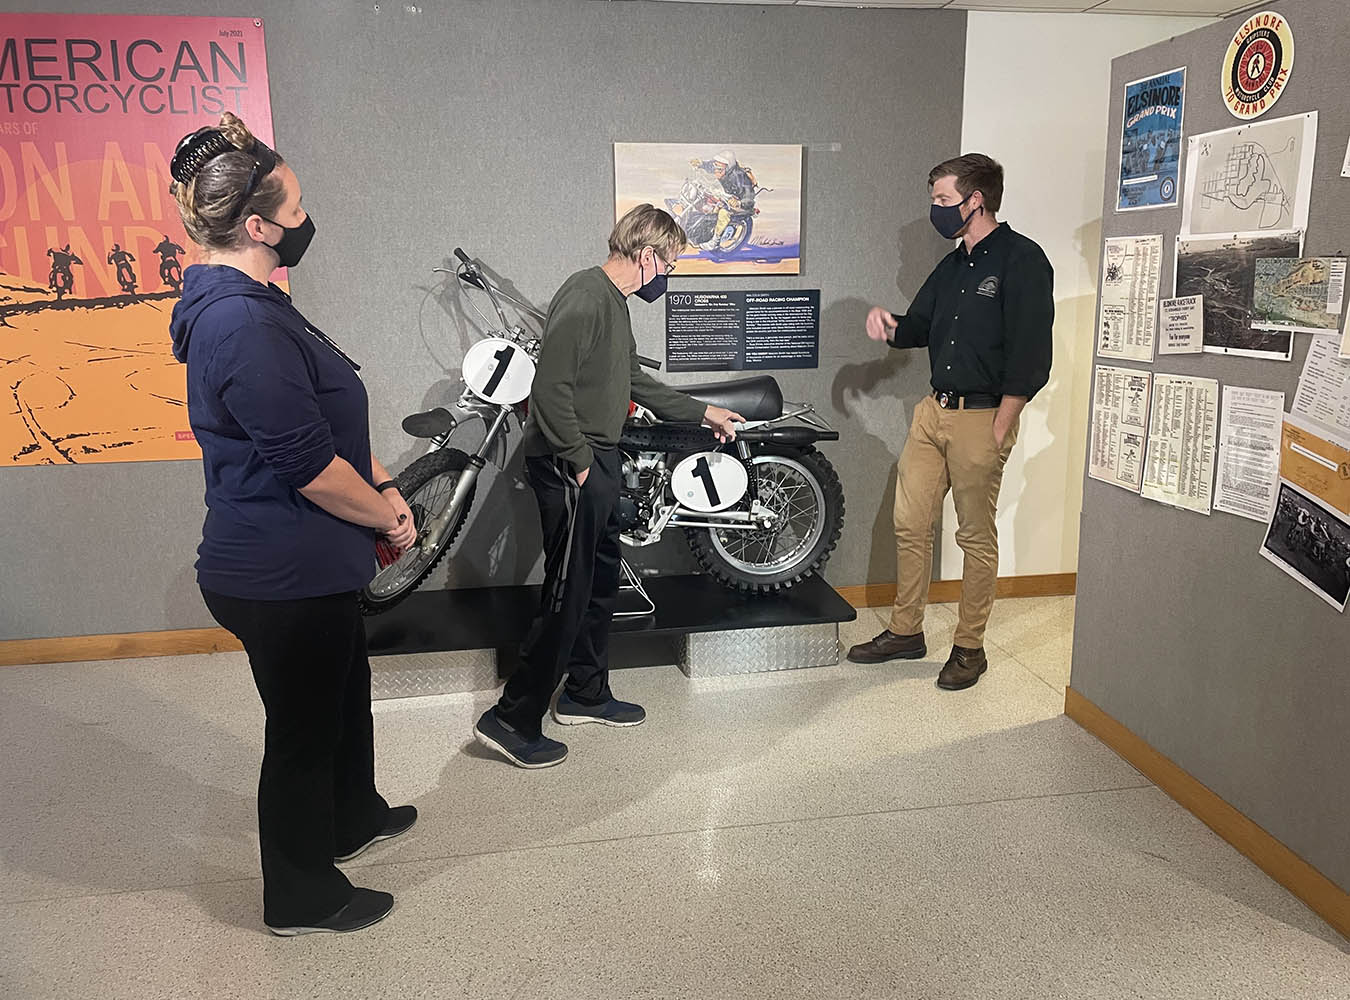 Russ Darnell visits AMA Motorcycle Hall of Fame